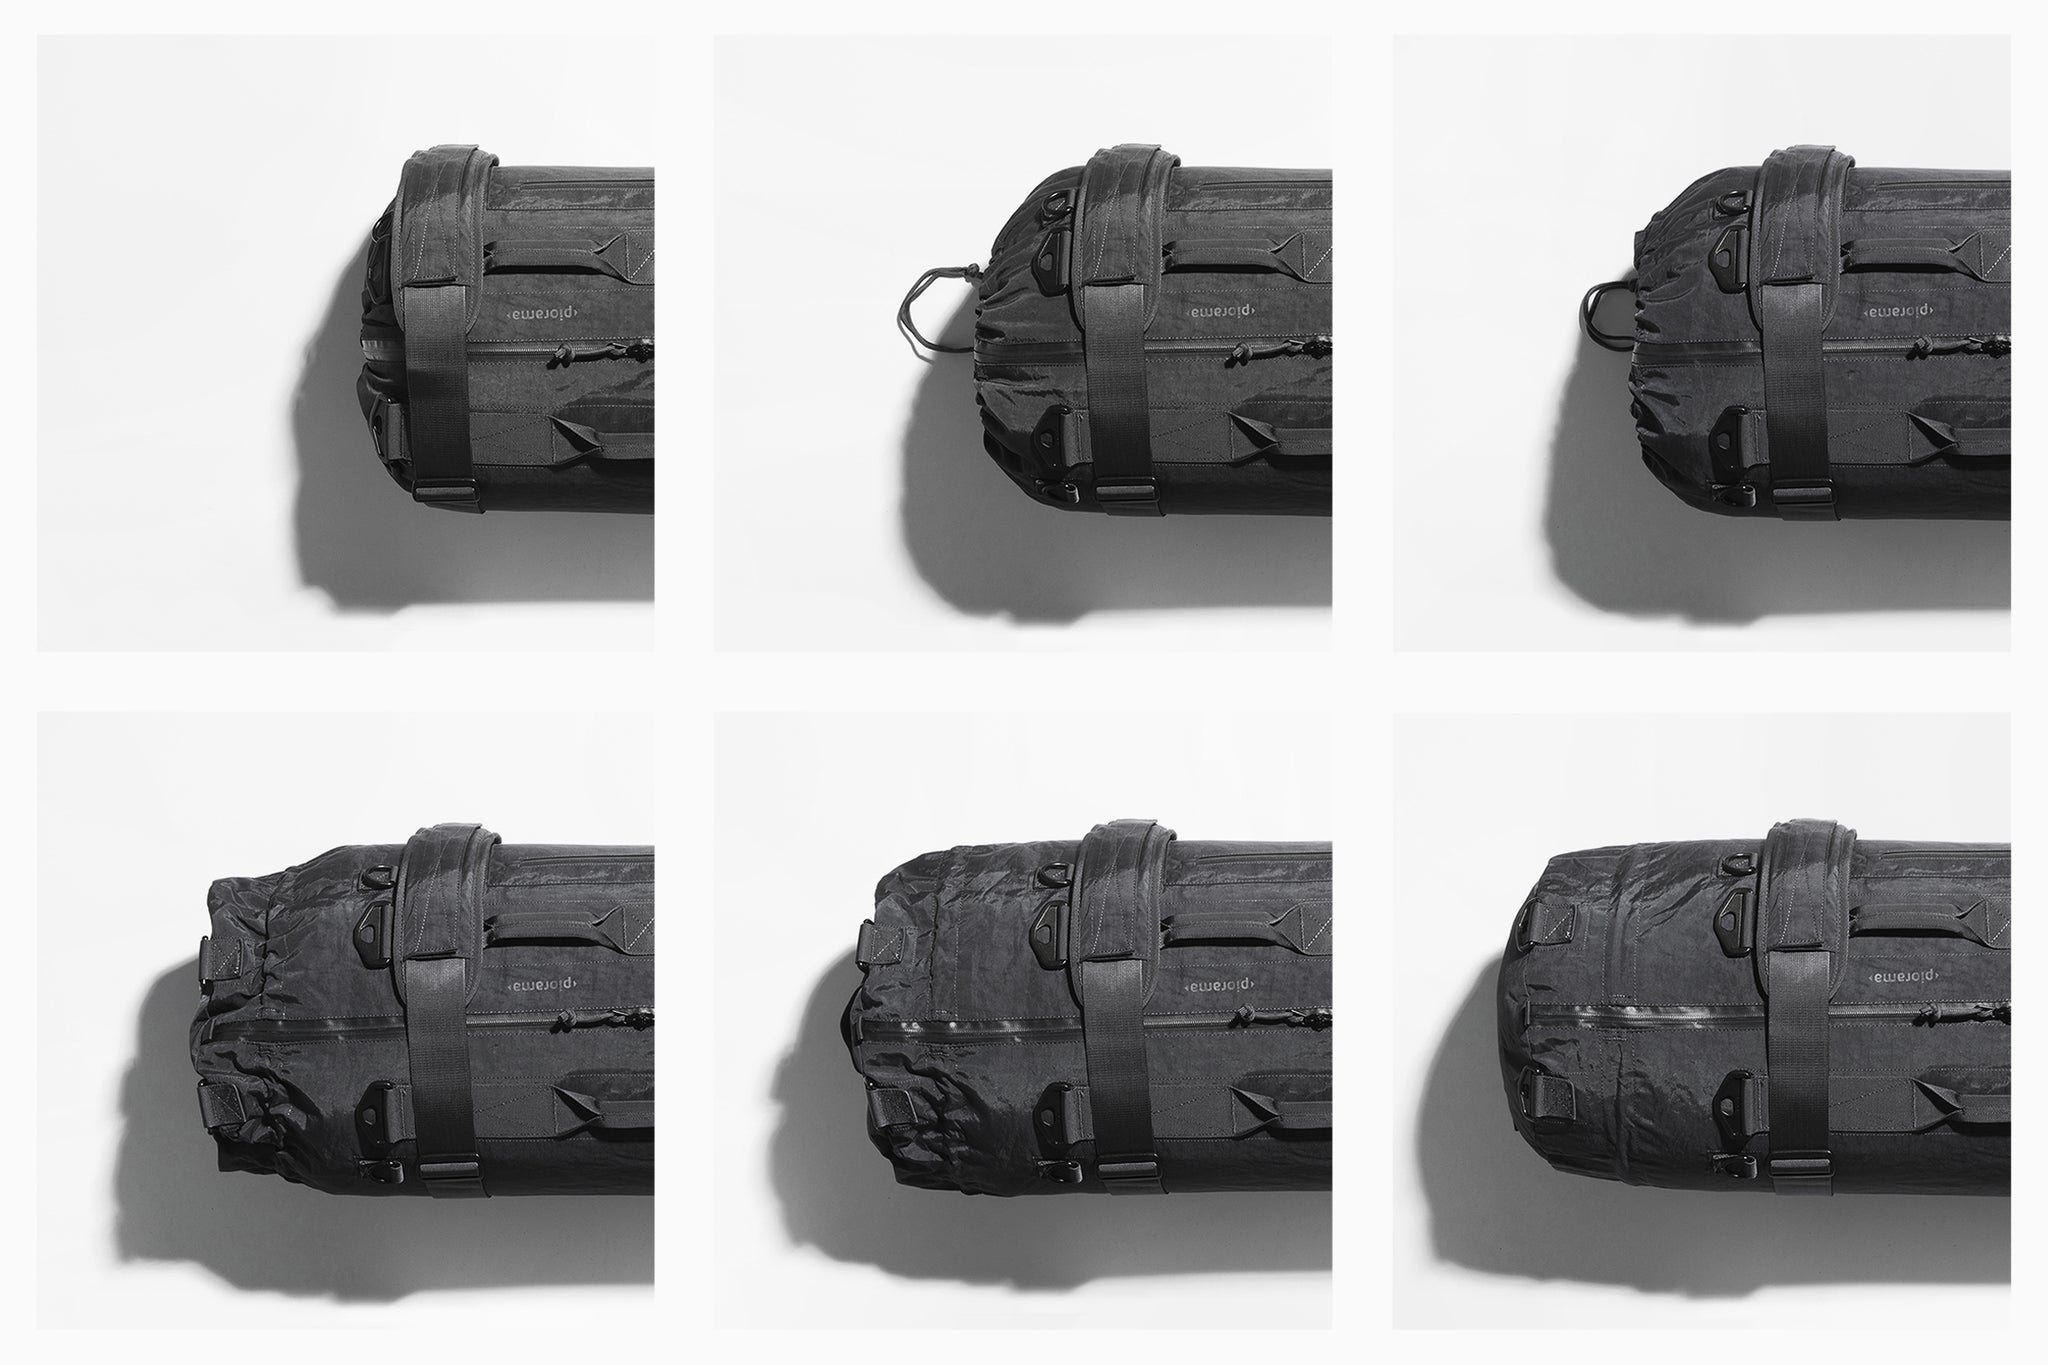 The Adjustable Bag A10 Expandable Collapsible Duffel Bag